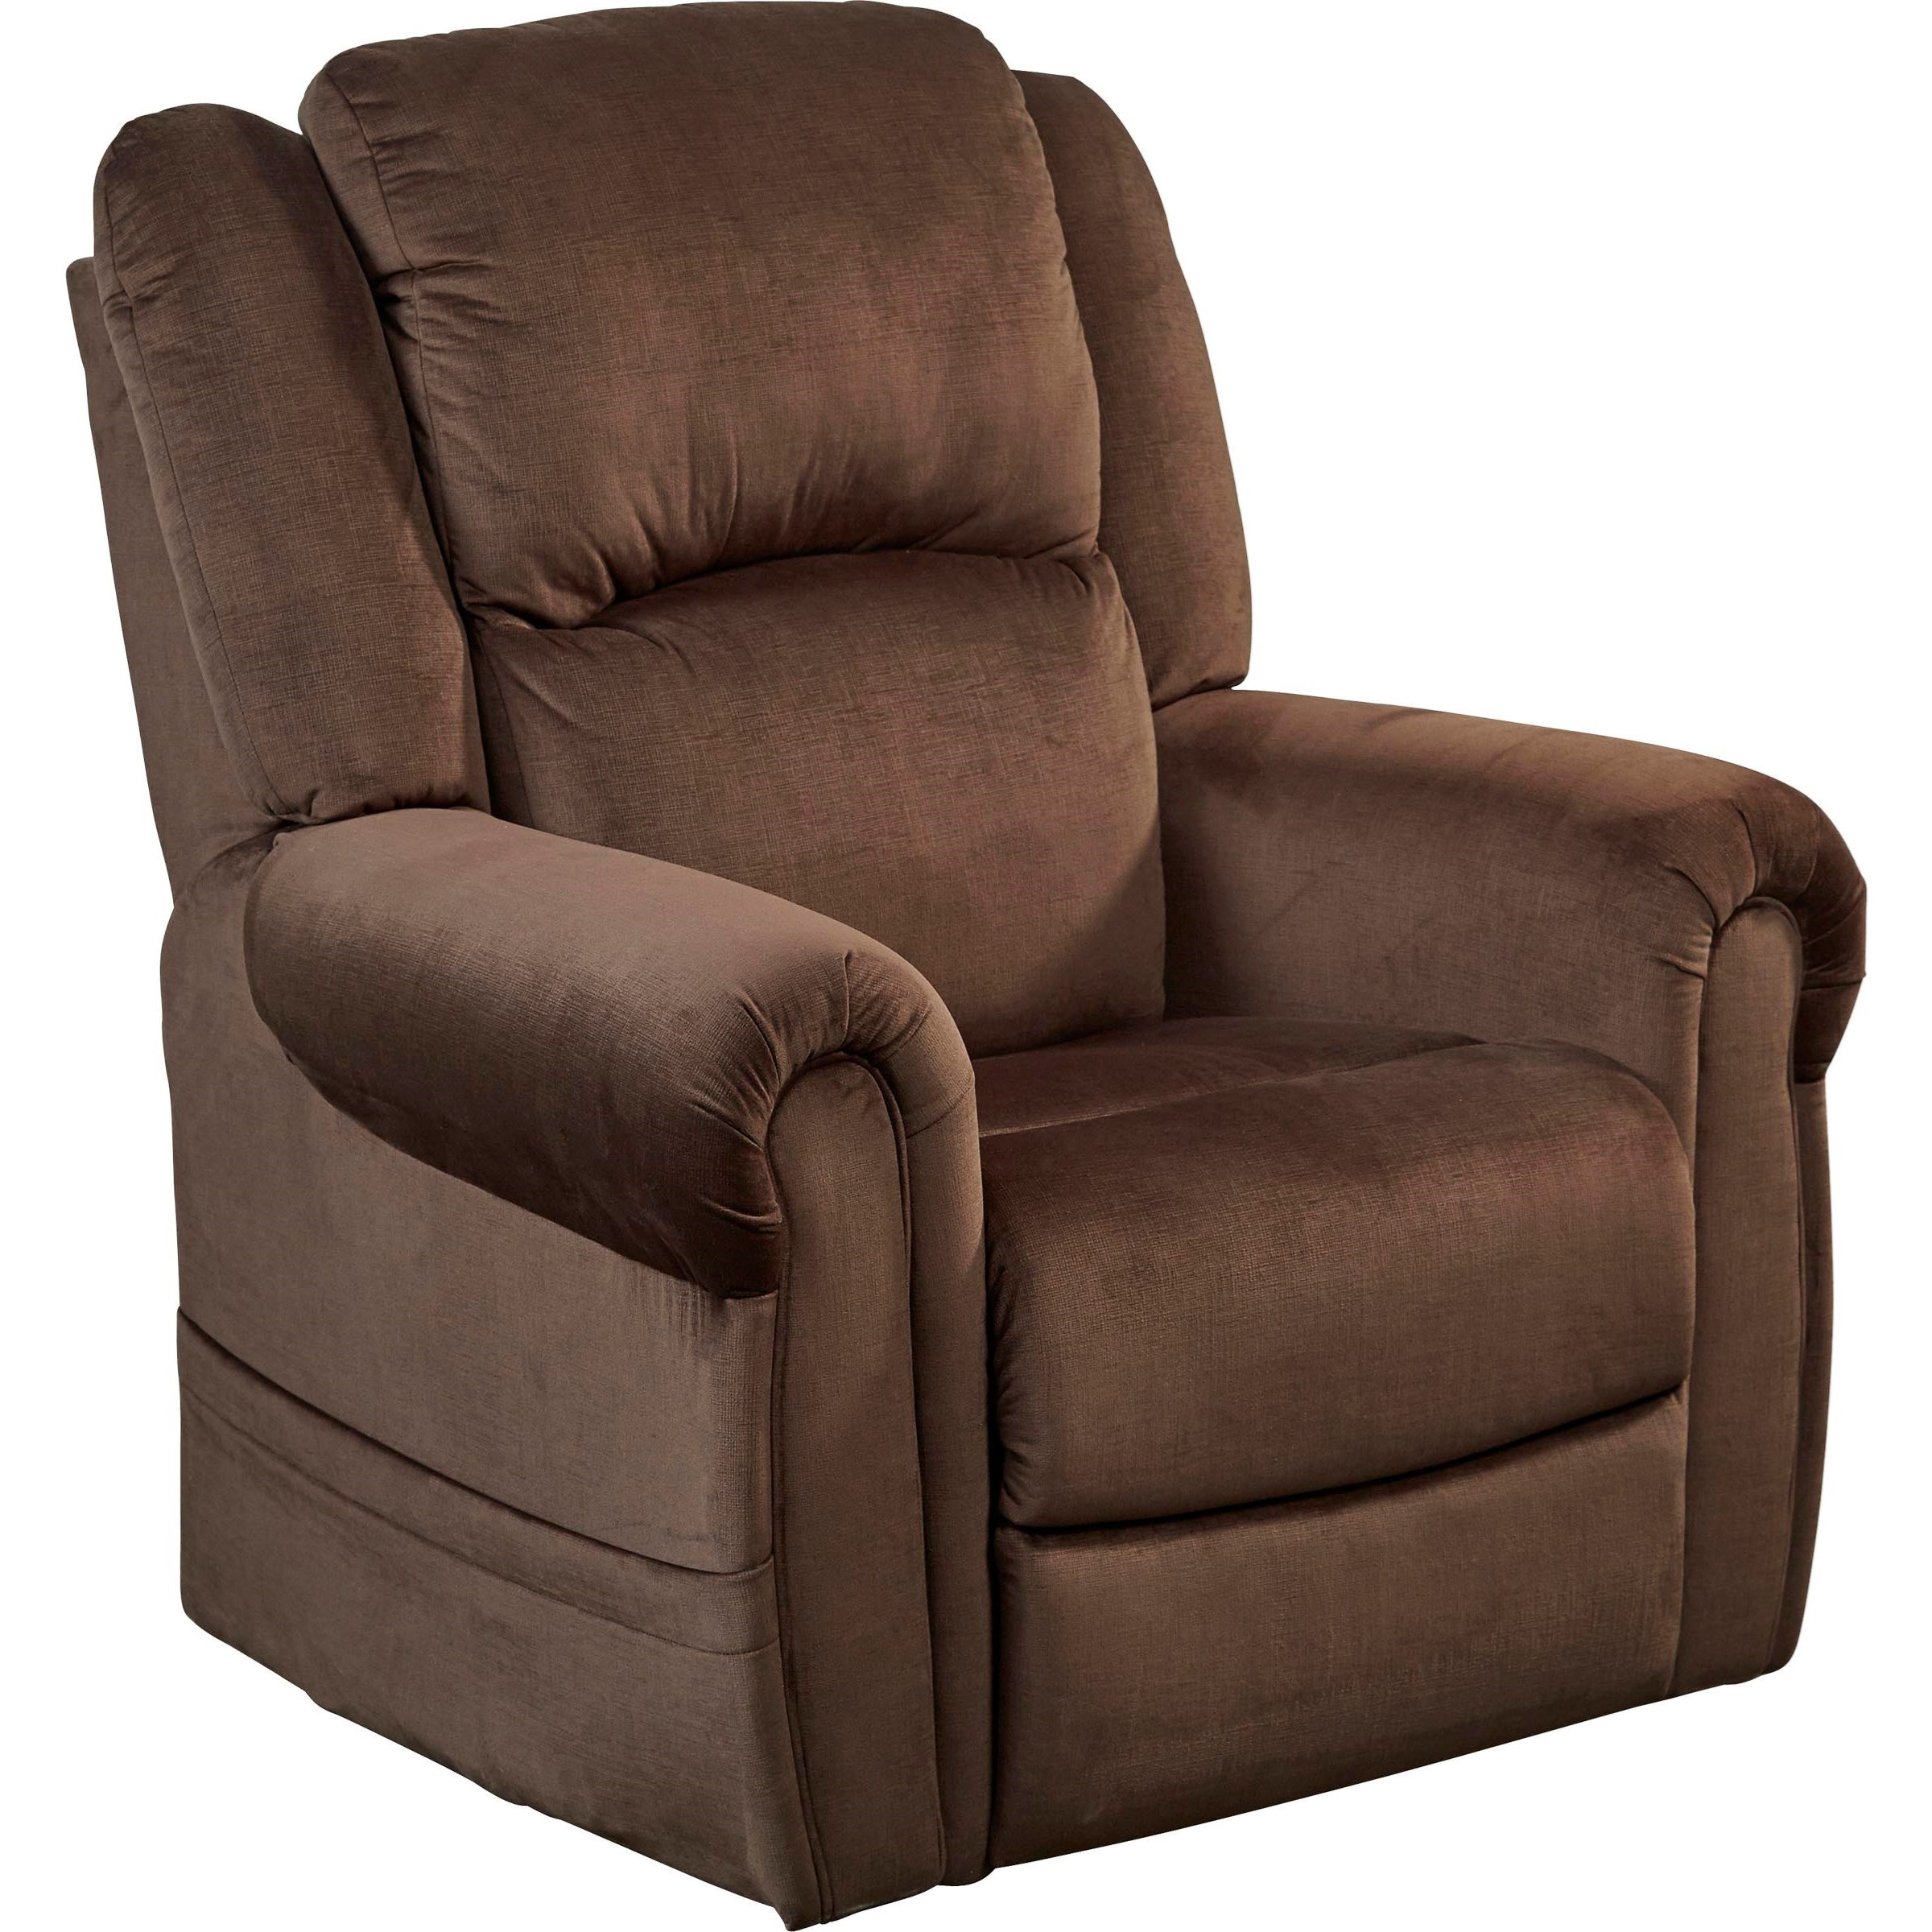 chair and lift power recliner 🛒 find great deals on power lift assist recliner by med-lift today read power lift assist recliner by med-lift reviews before you buy, you can verify and compare.